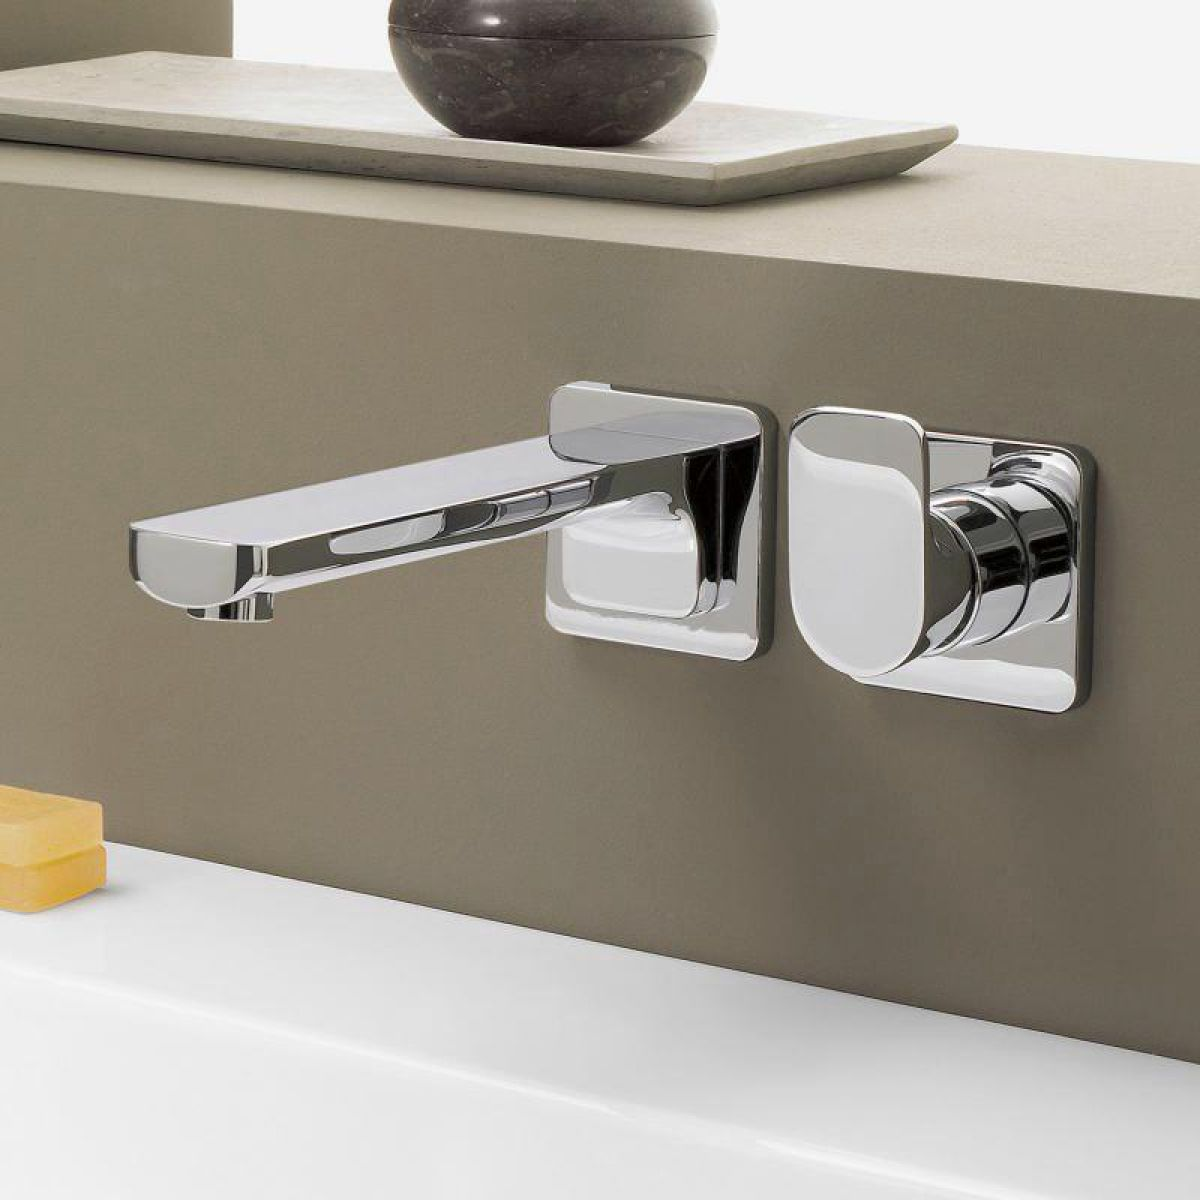 Villeroy and boch cult wall mounted basin mixer tap uk - Villeroy and bosh ...